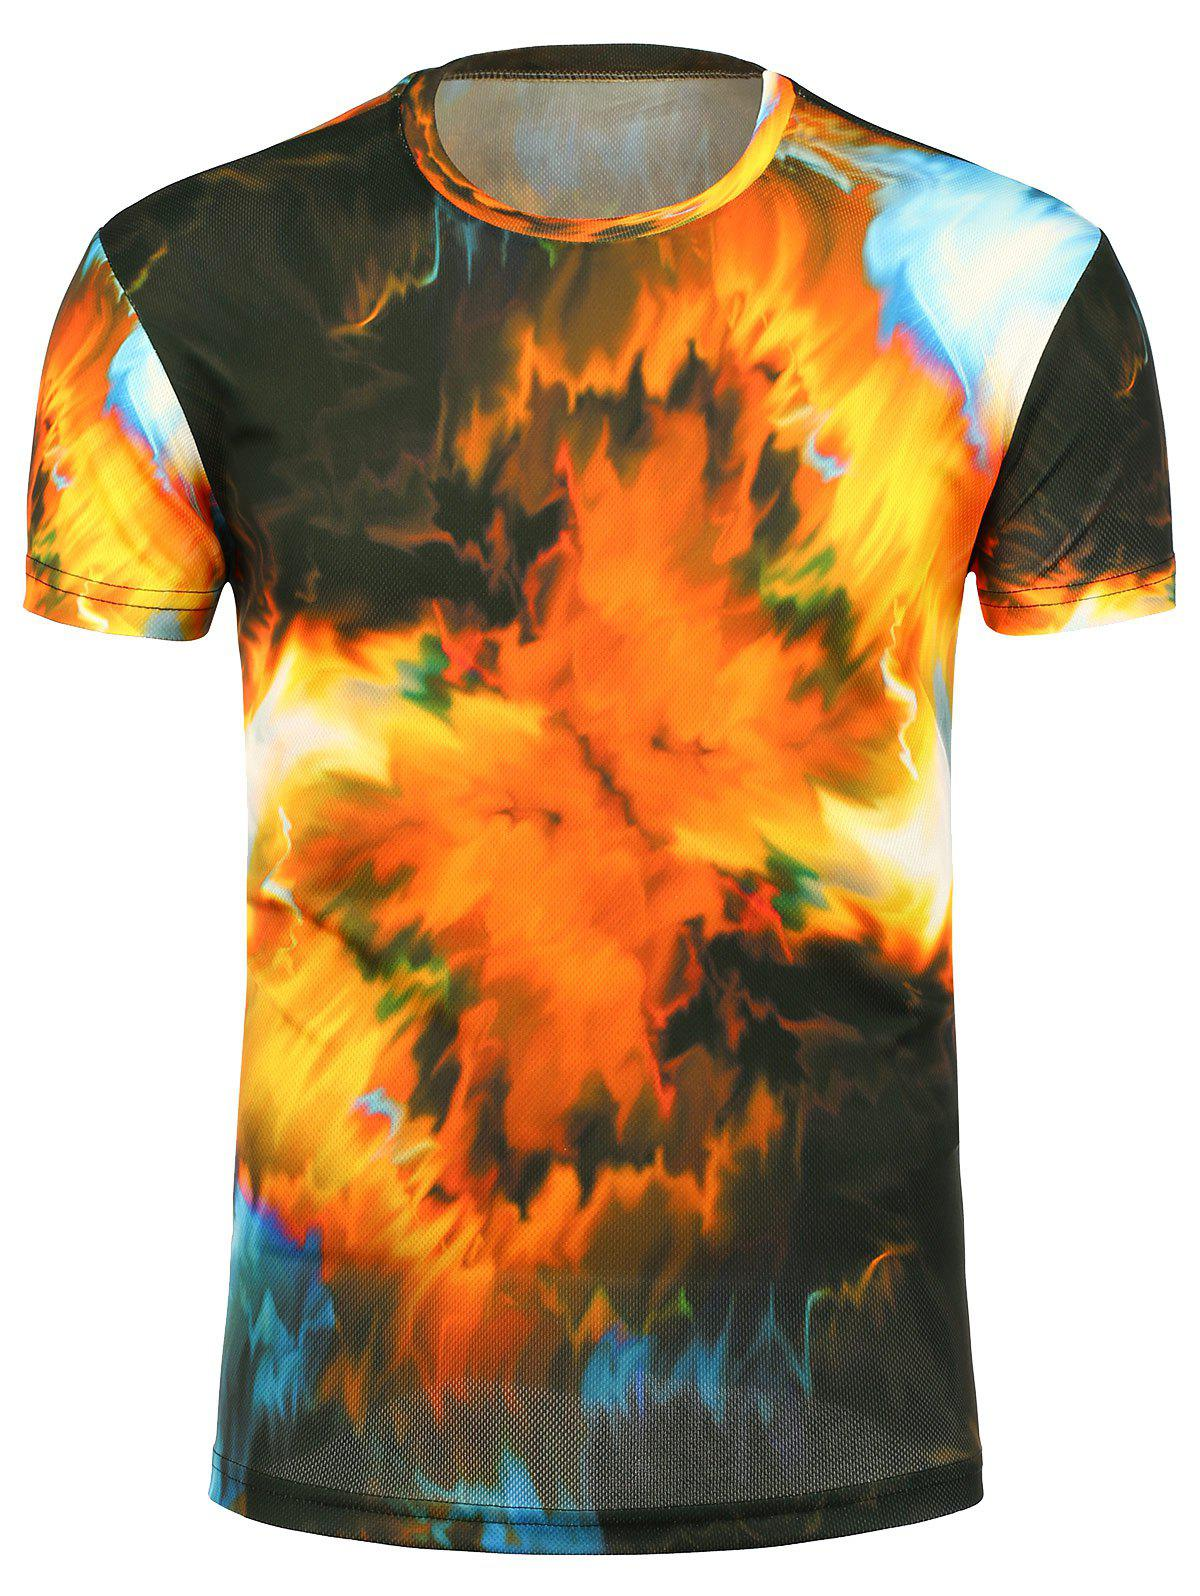 3D Tie Dye Print Crew Neck Trippy T-Shirt 3d galaxy print crew neck trippy t shirt